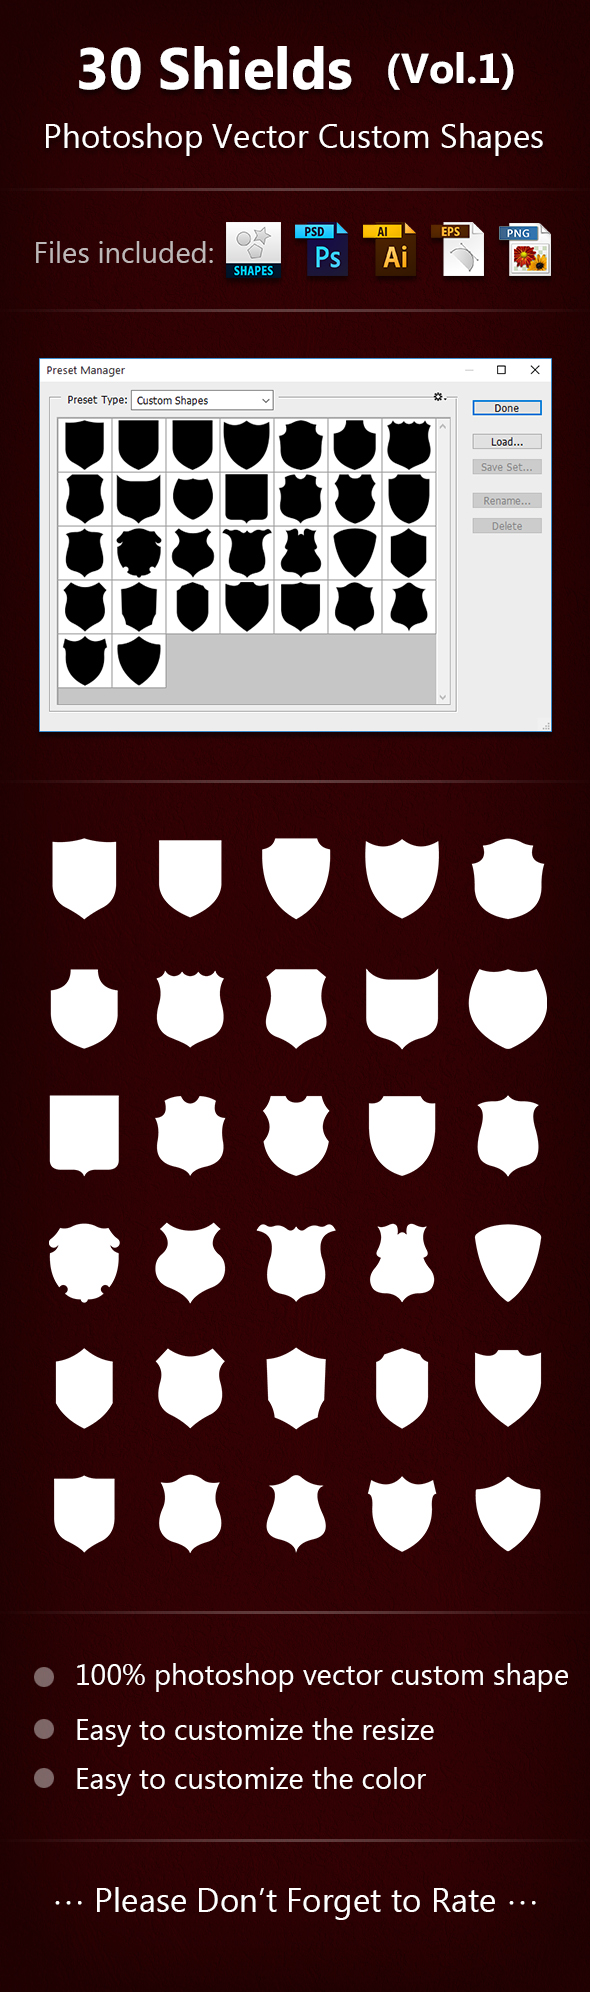 30 Shields Photoshop Vector Custom Shapes - Miscellaneous Shapes